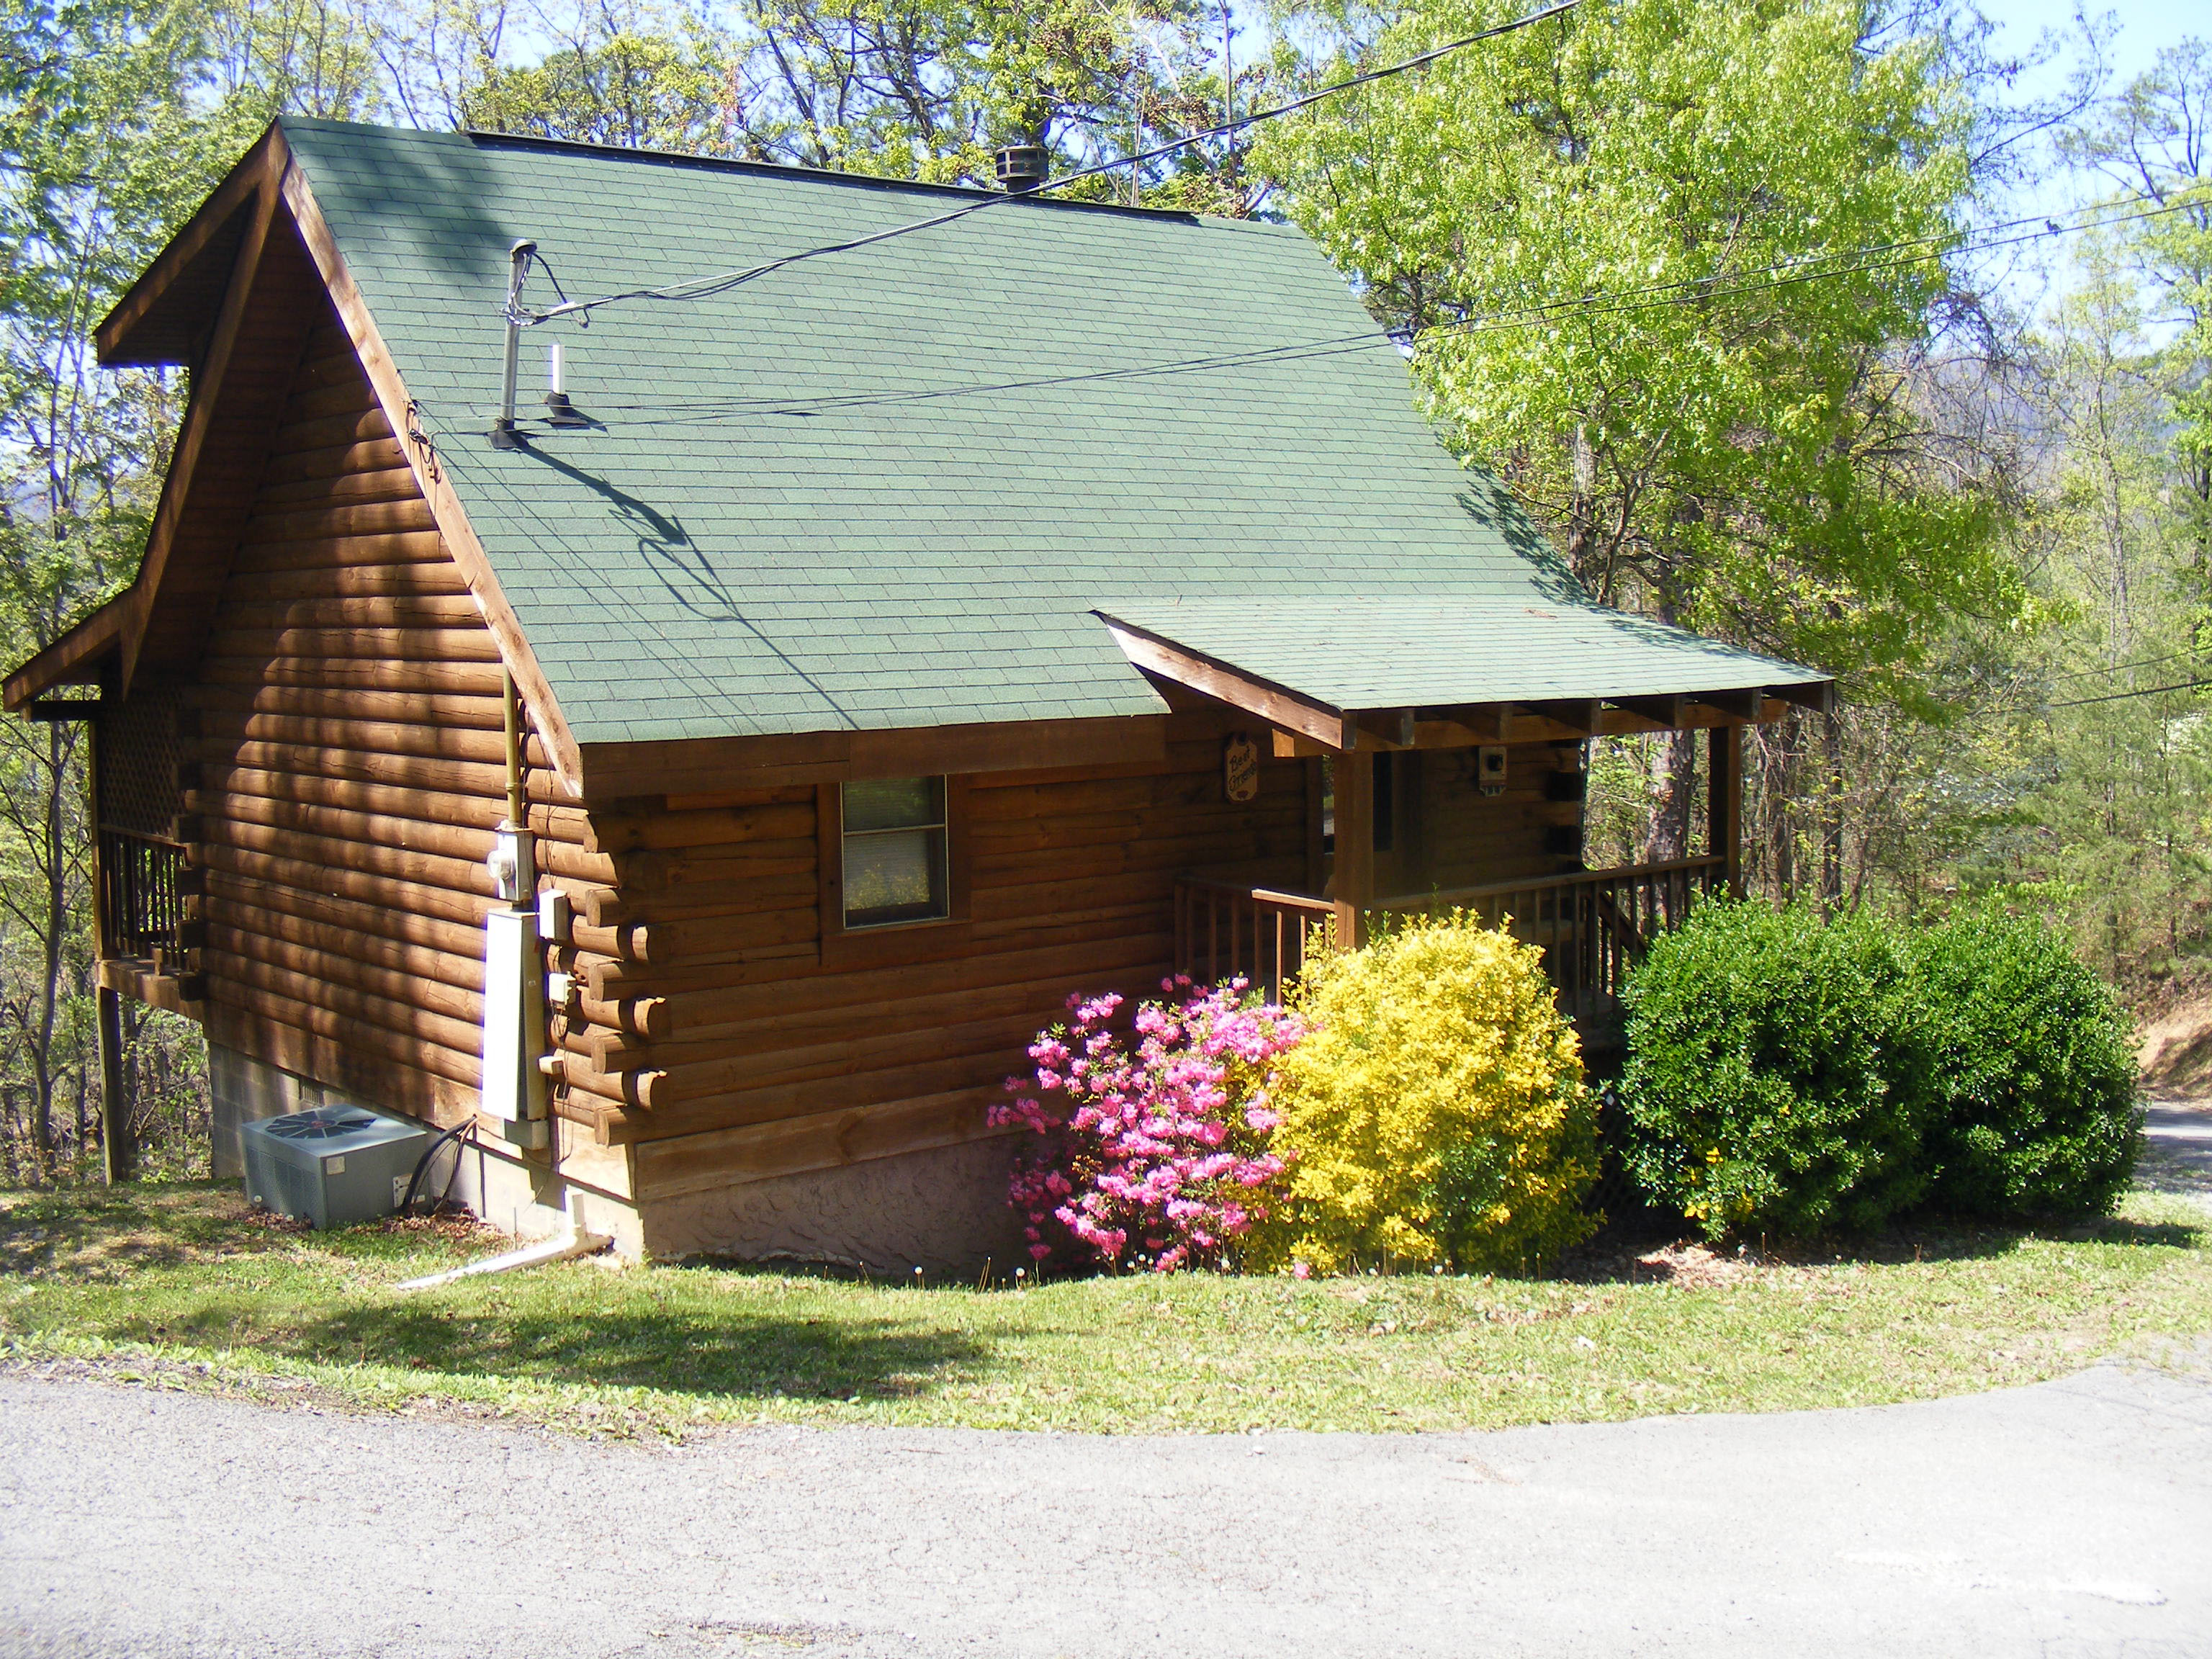 Best Friends. 1 Bedroom Cabins   Bear Camp Cabin Rentals